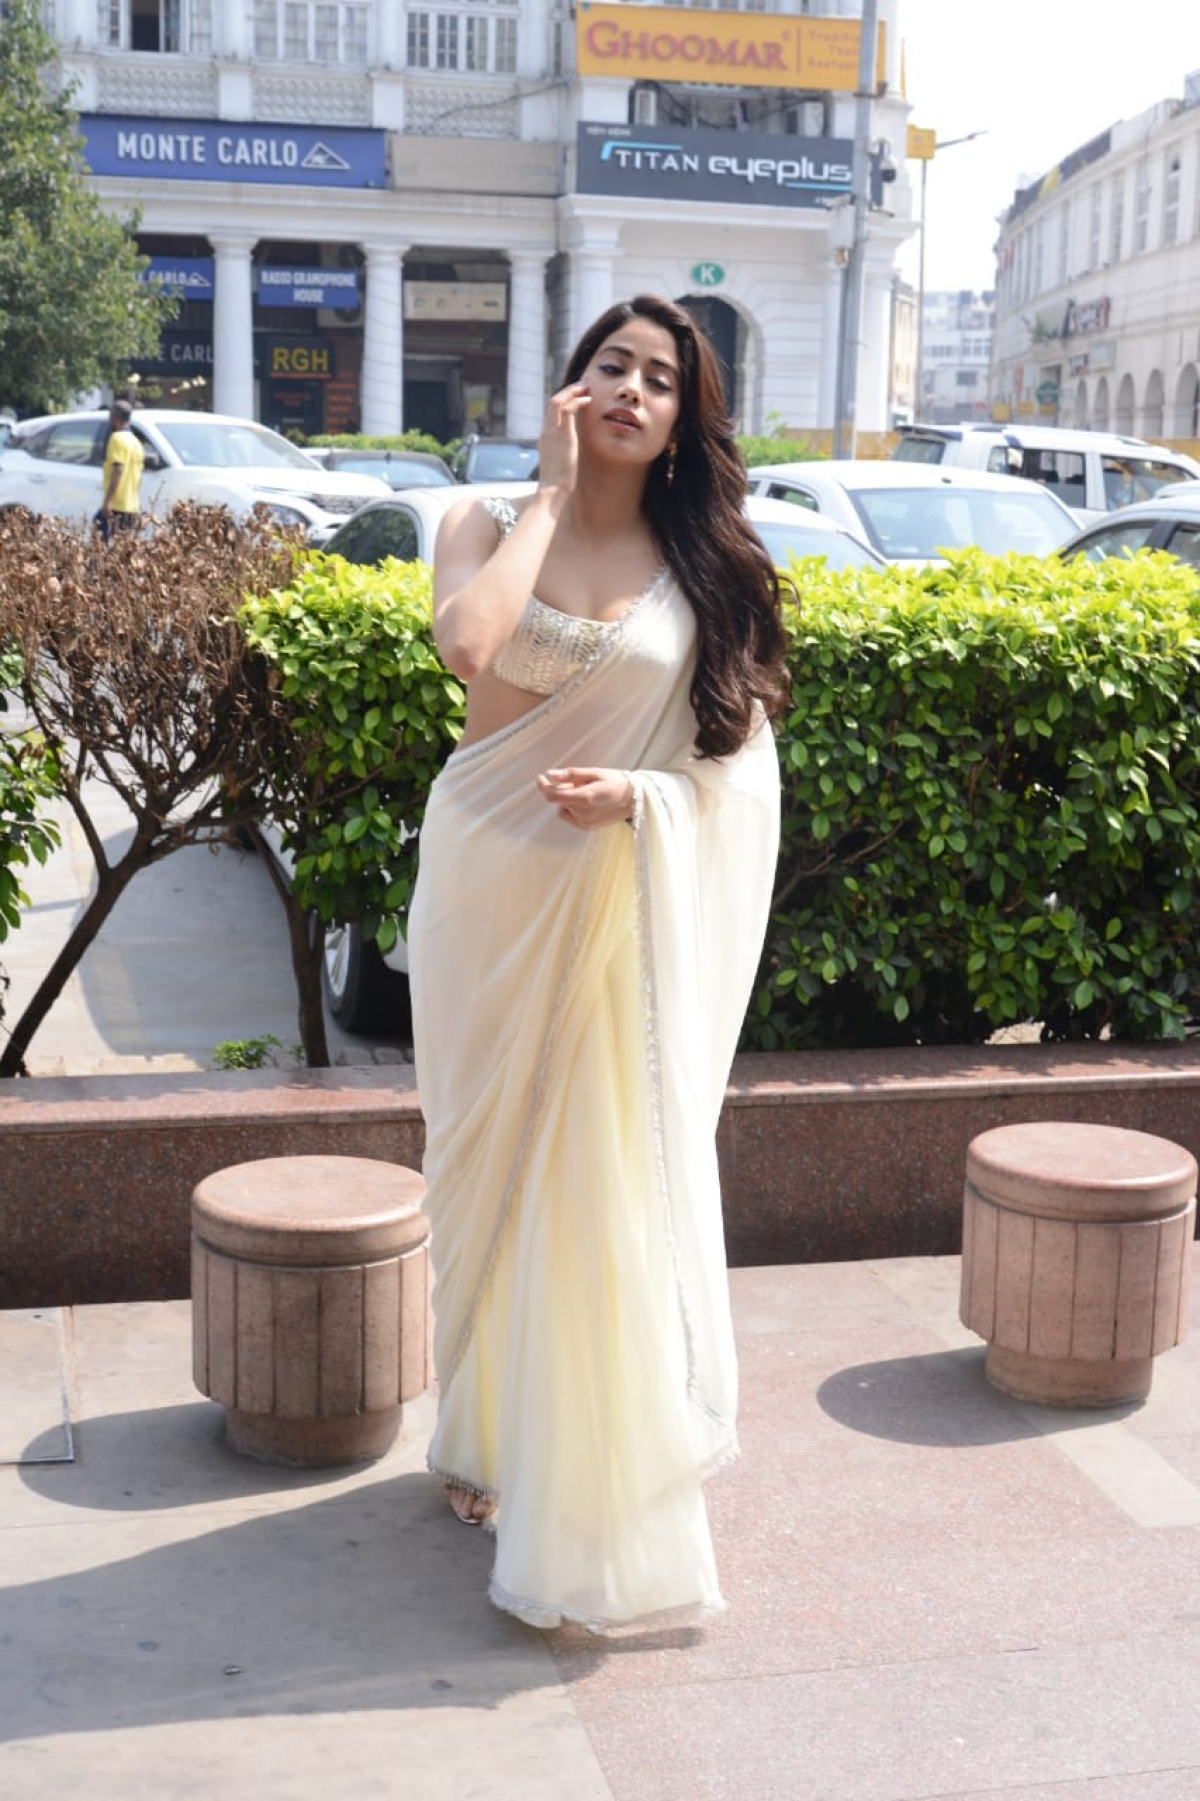 In Pics: Janhvi Kapoor takes fashion cues from mom Sridevi, stuns in white saree for 'Roohi' promotions